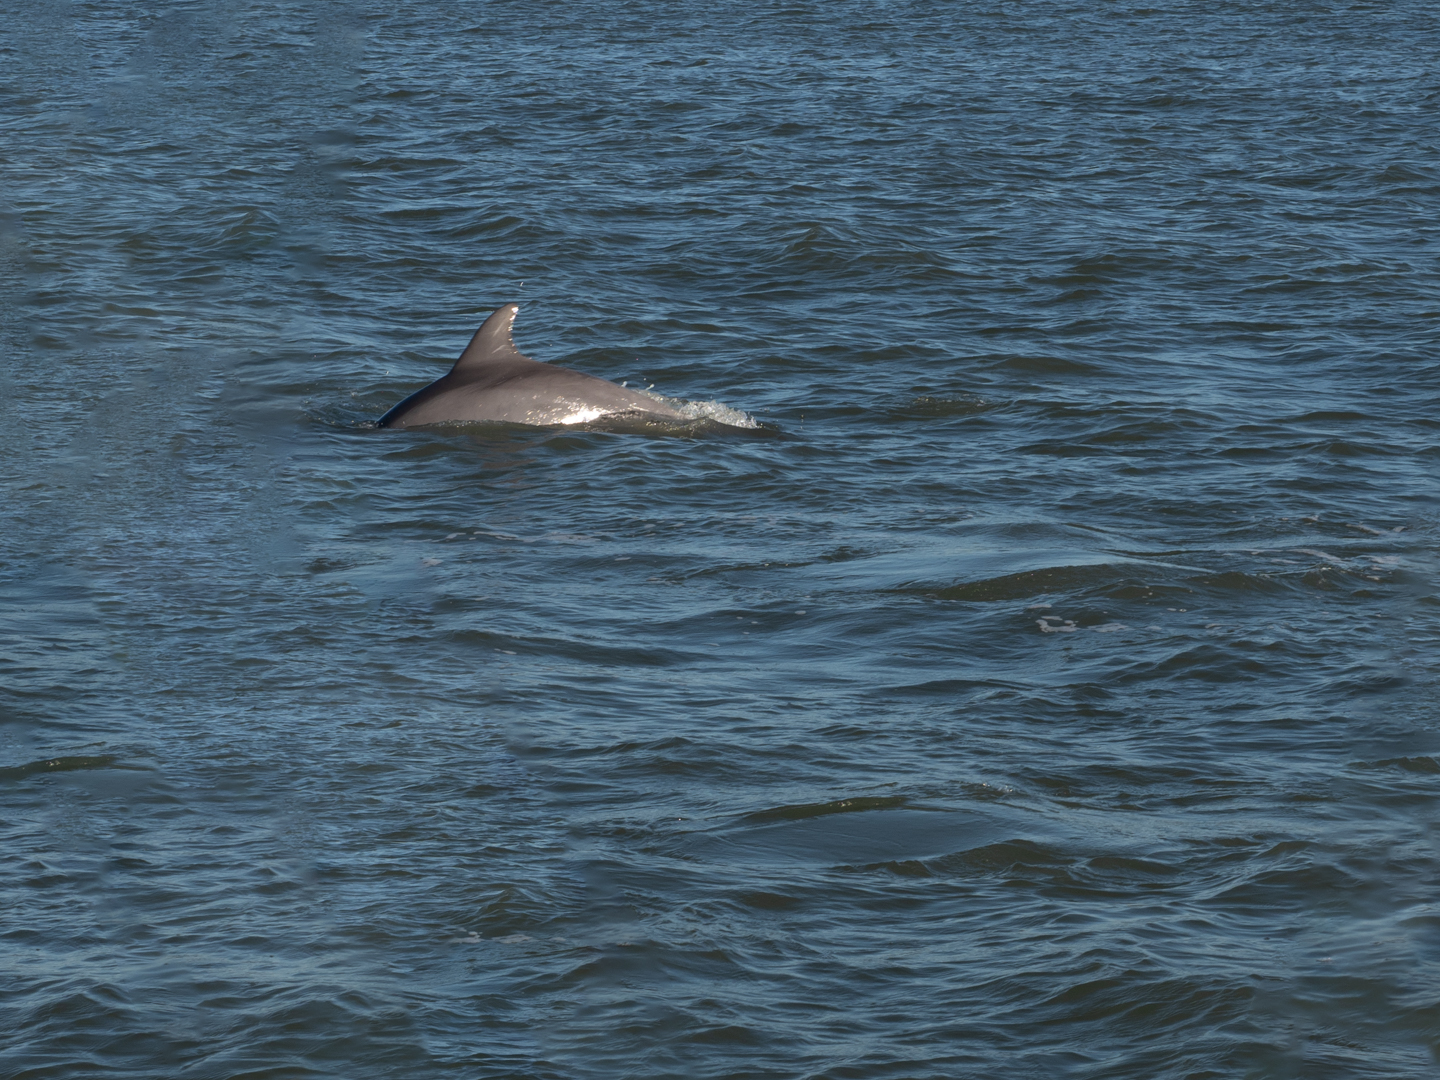 Diving Dolphins Photo